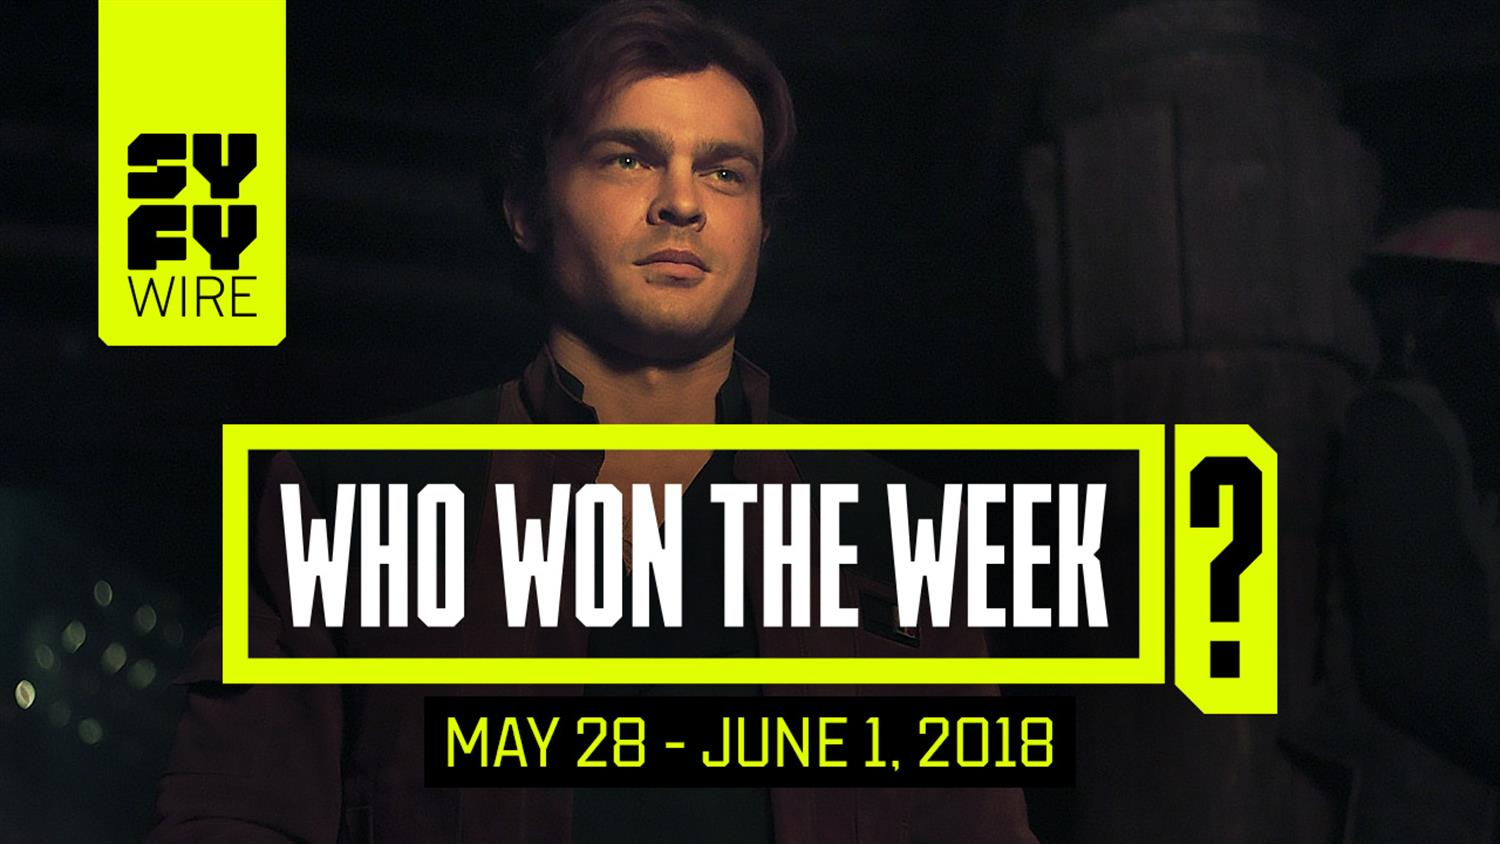 Does Solo Get A Single or Double Star? Who Won The Week For May 28-June 1